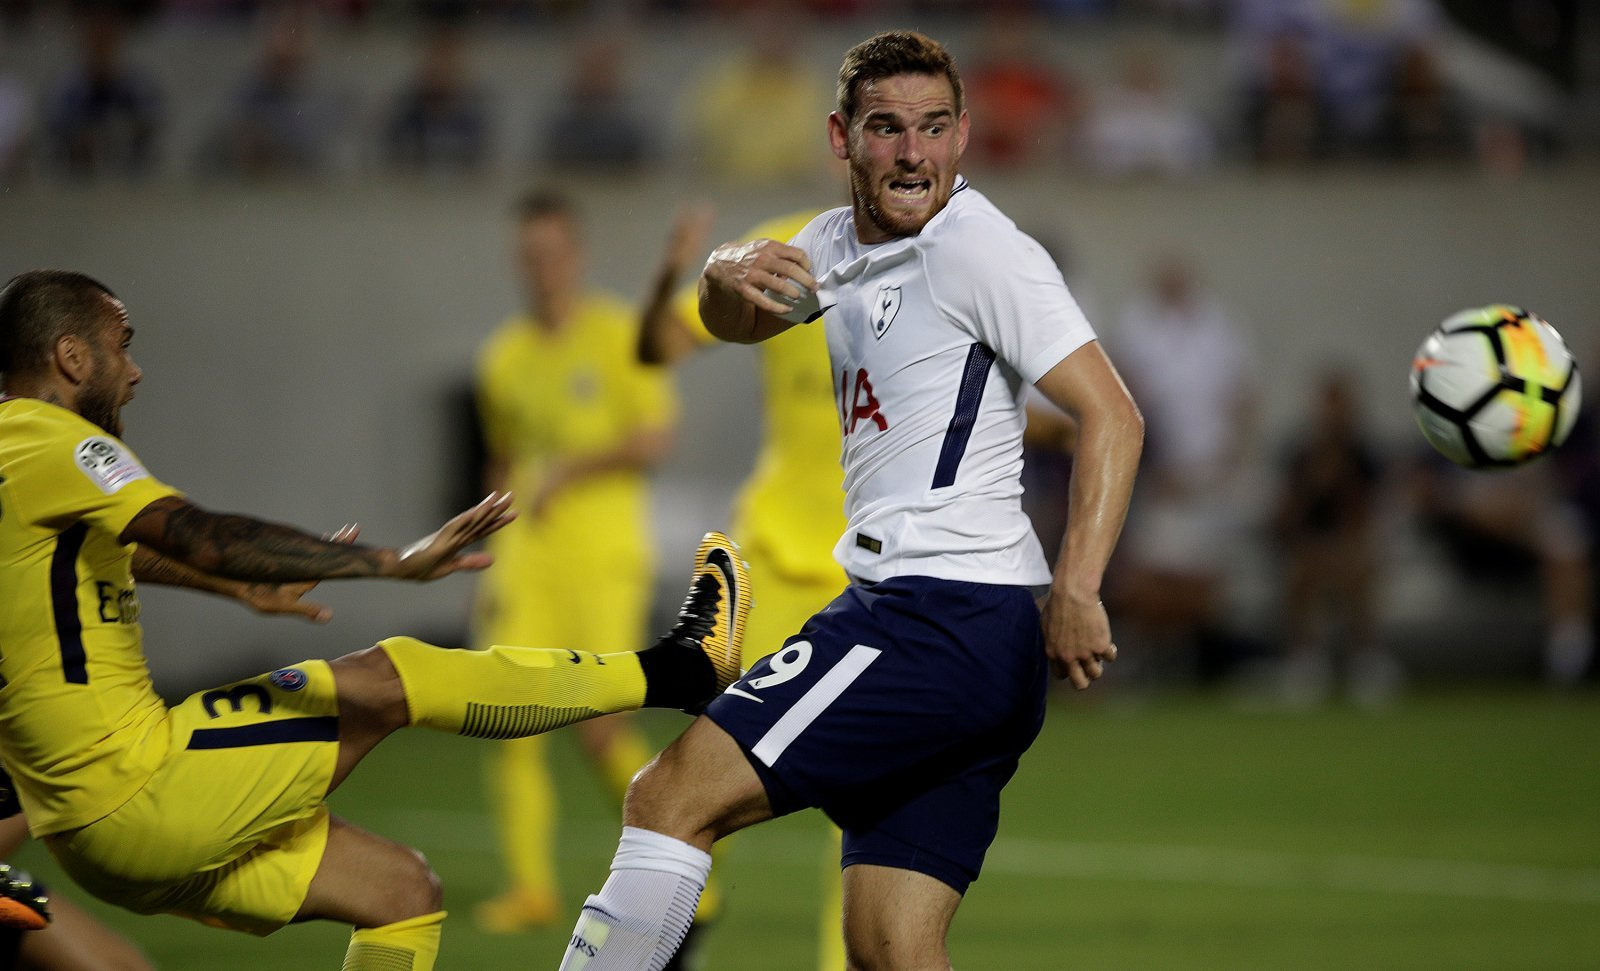 Vincent Janssen set to stay after suffering injury